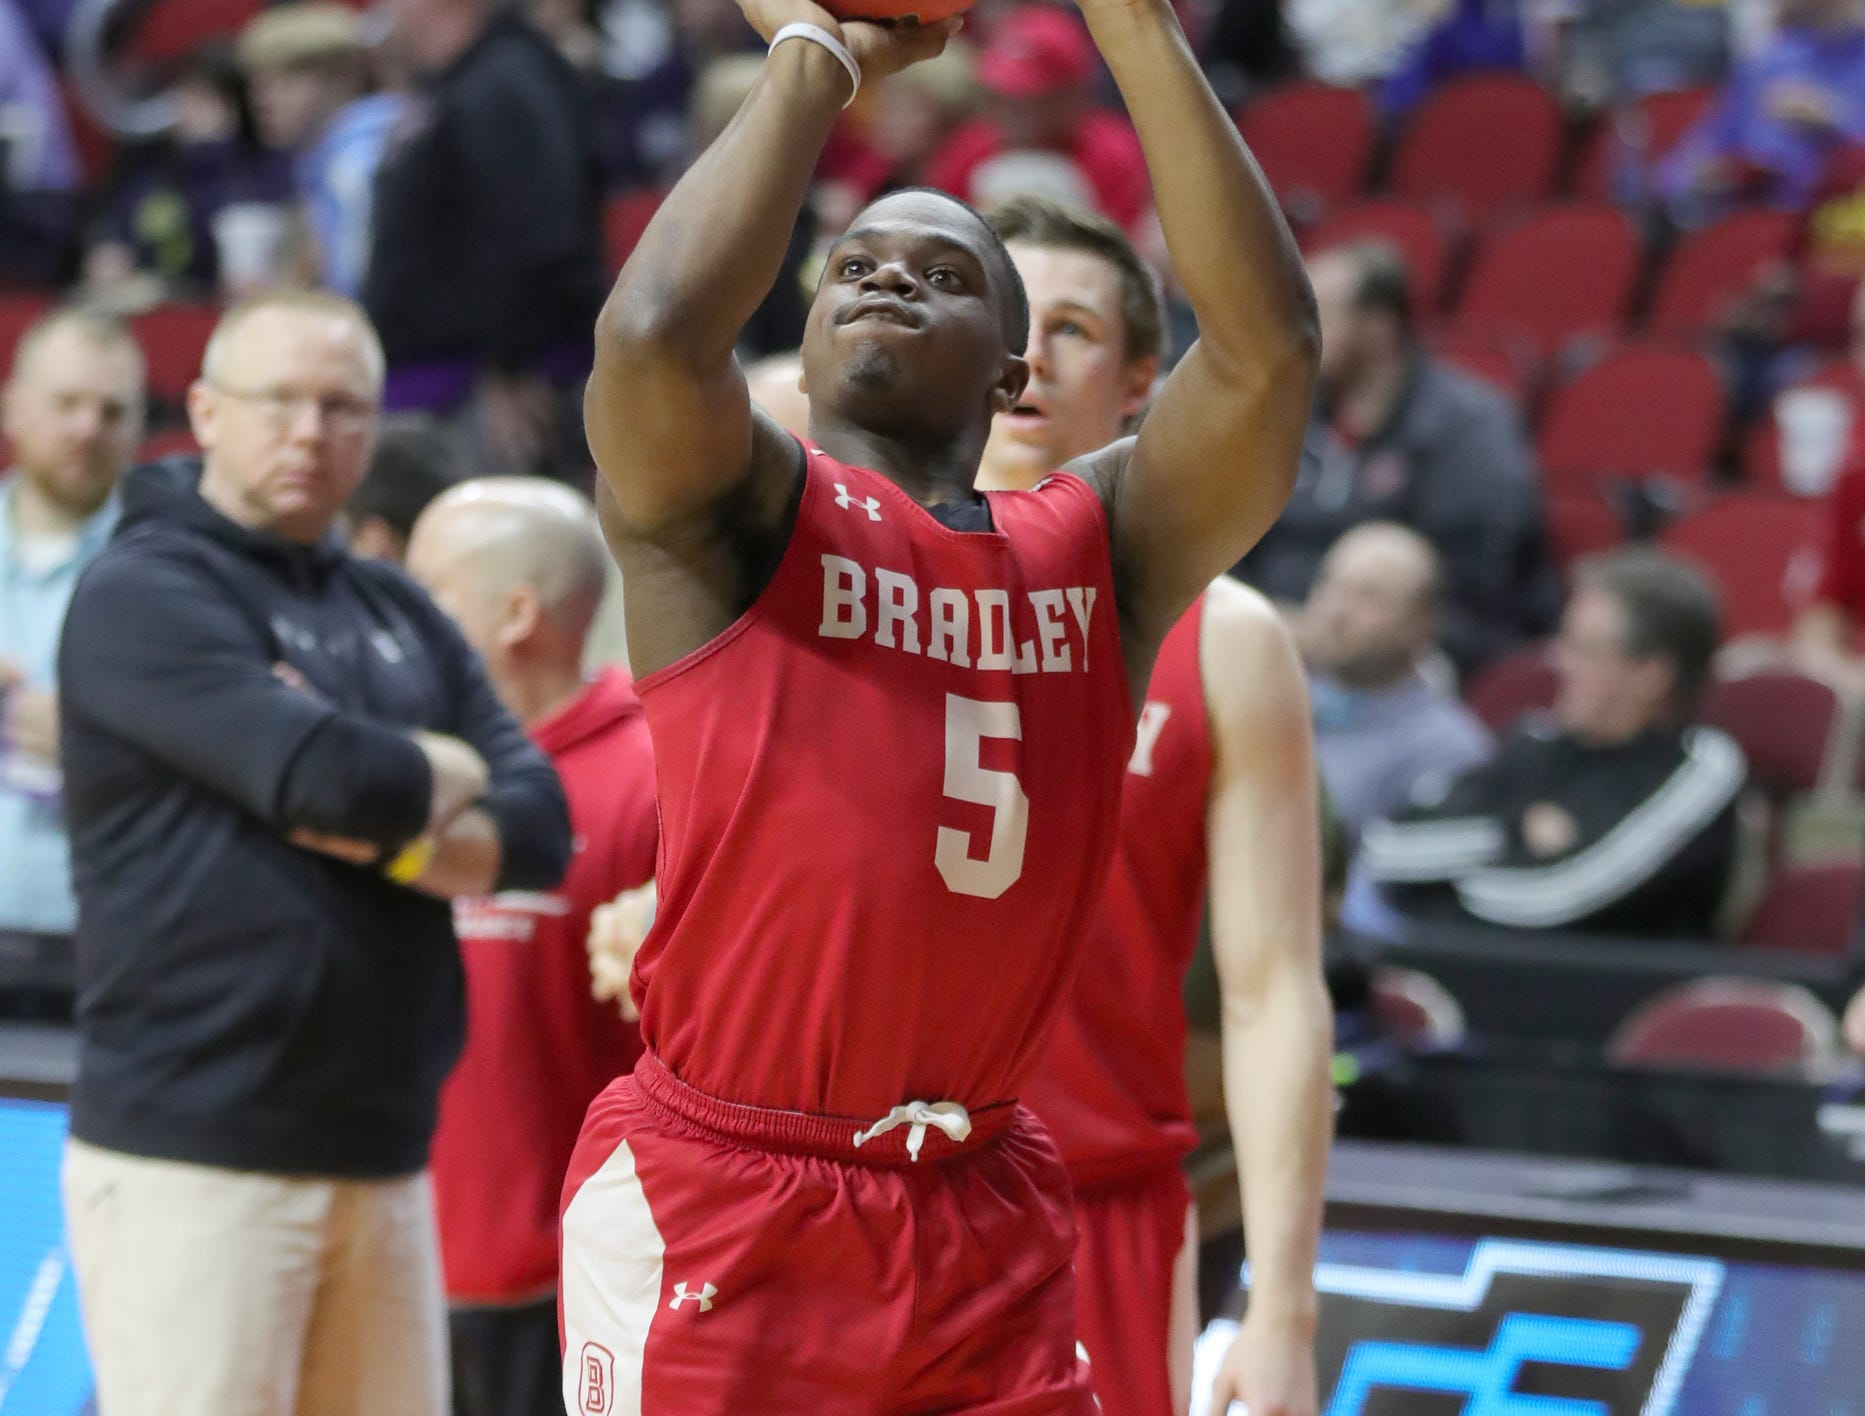 Bradley guard Darrell Brown practices for the first-round NCAA tournament game against Michigan State on Wednesday, March 20, 2019 at Wells Fargo Arena in Des Moines, Iowa.